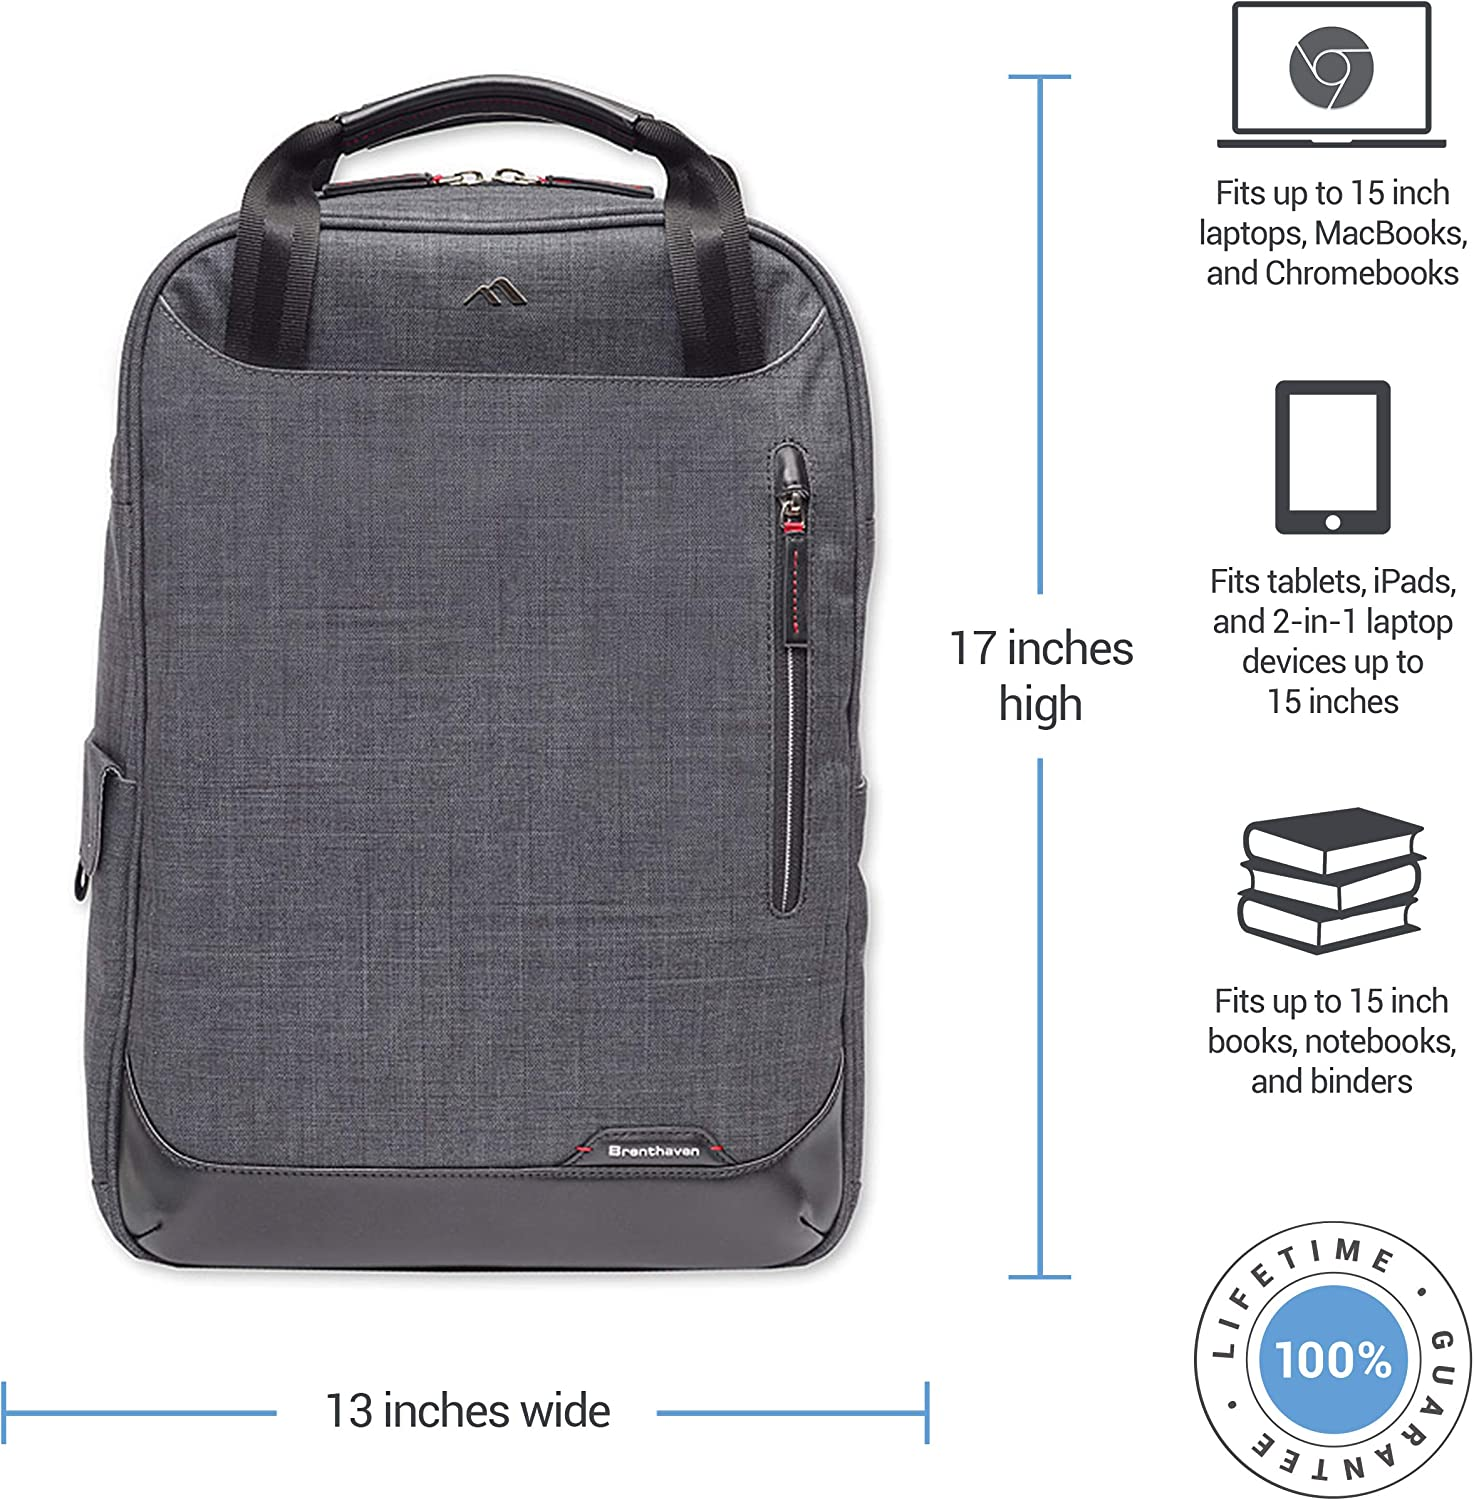 Durable Tablet for Commercial Brenthaven Collins Convertible Backpack With Tote Straps Fits 15 Inch Laptop Business Office Rugged Protection from Impact and Compression Apple Macbook Graphite